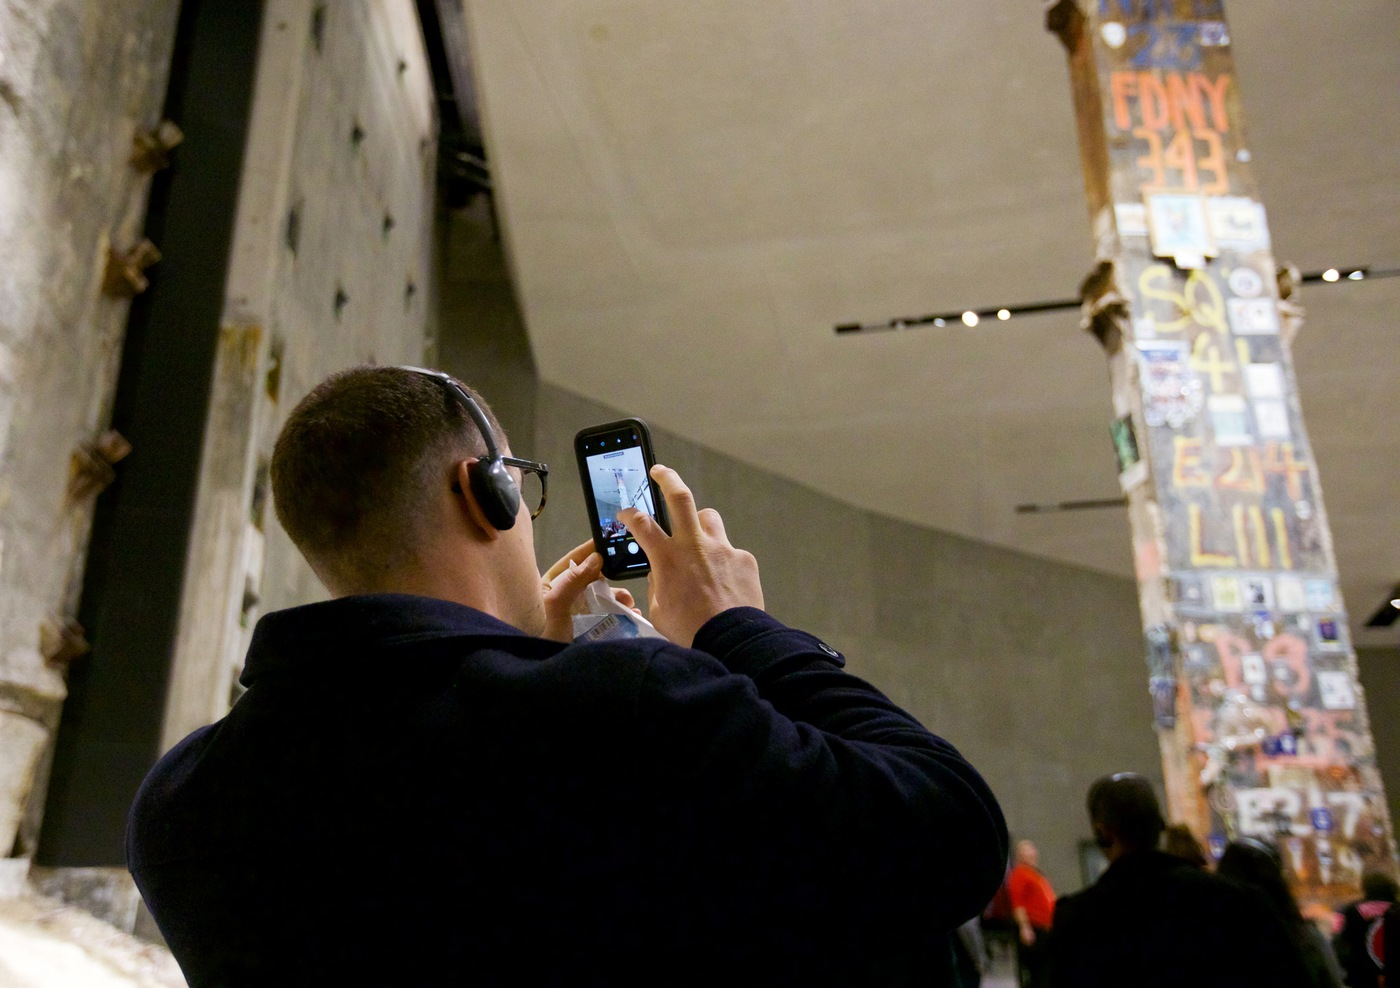 Taking a Photo at 9/11 Memorial & Museum